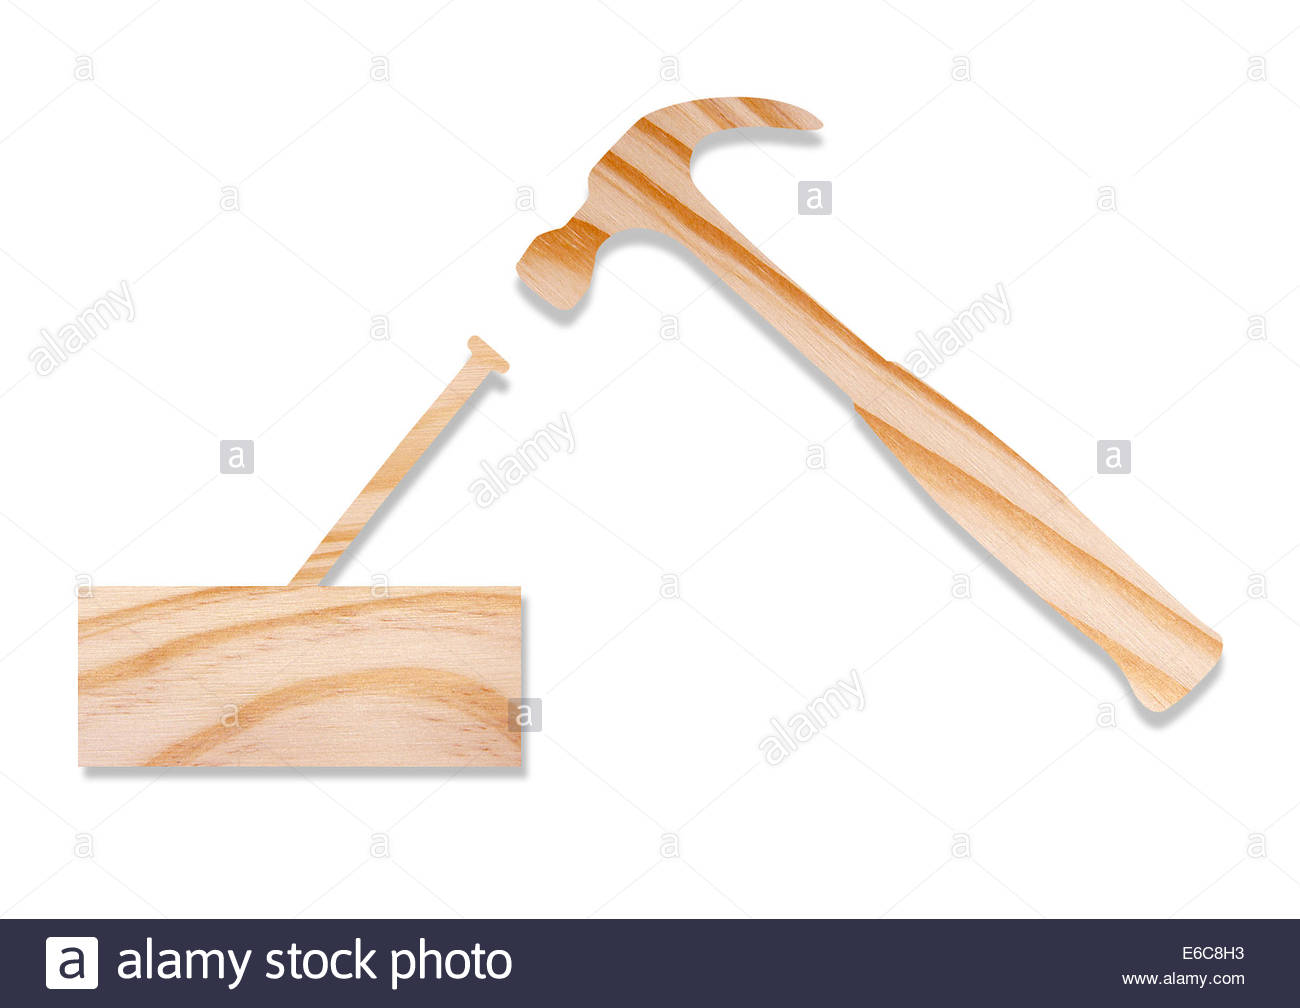 Hammer and nail shapes cut out of wood, isolated on white background ...